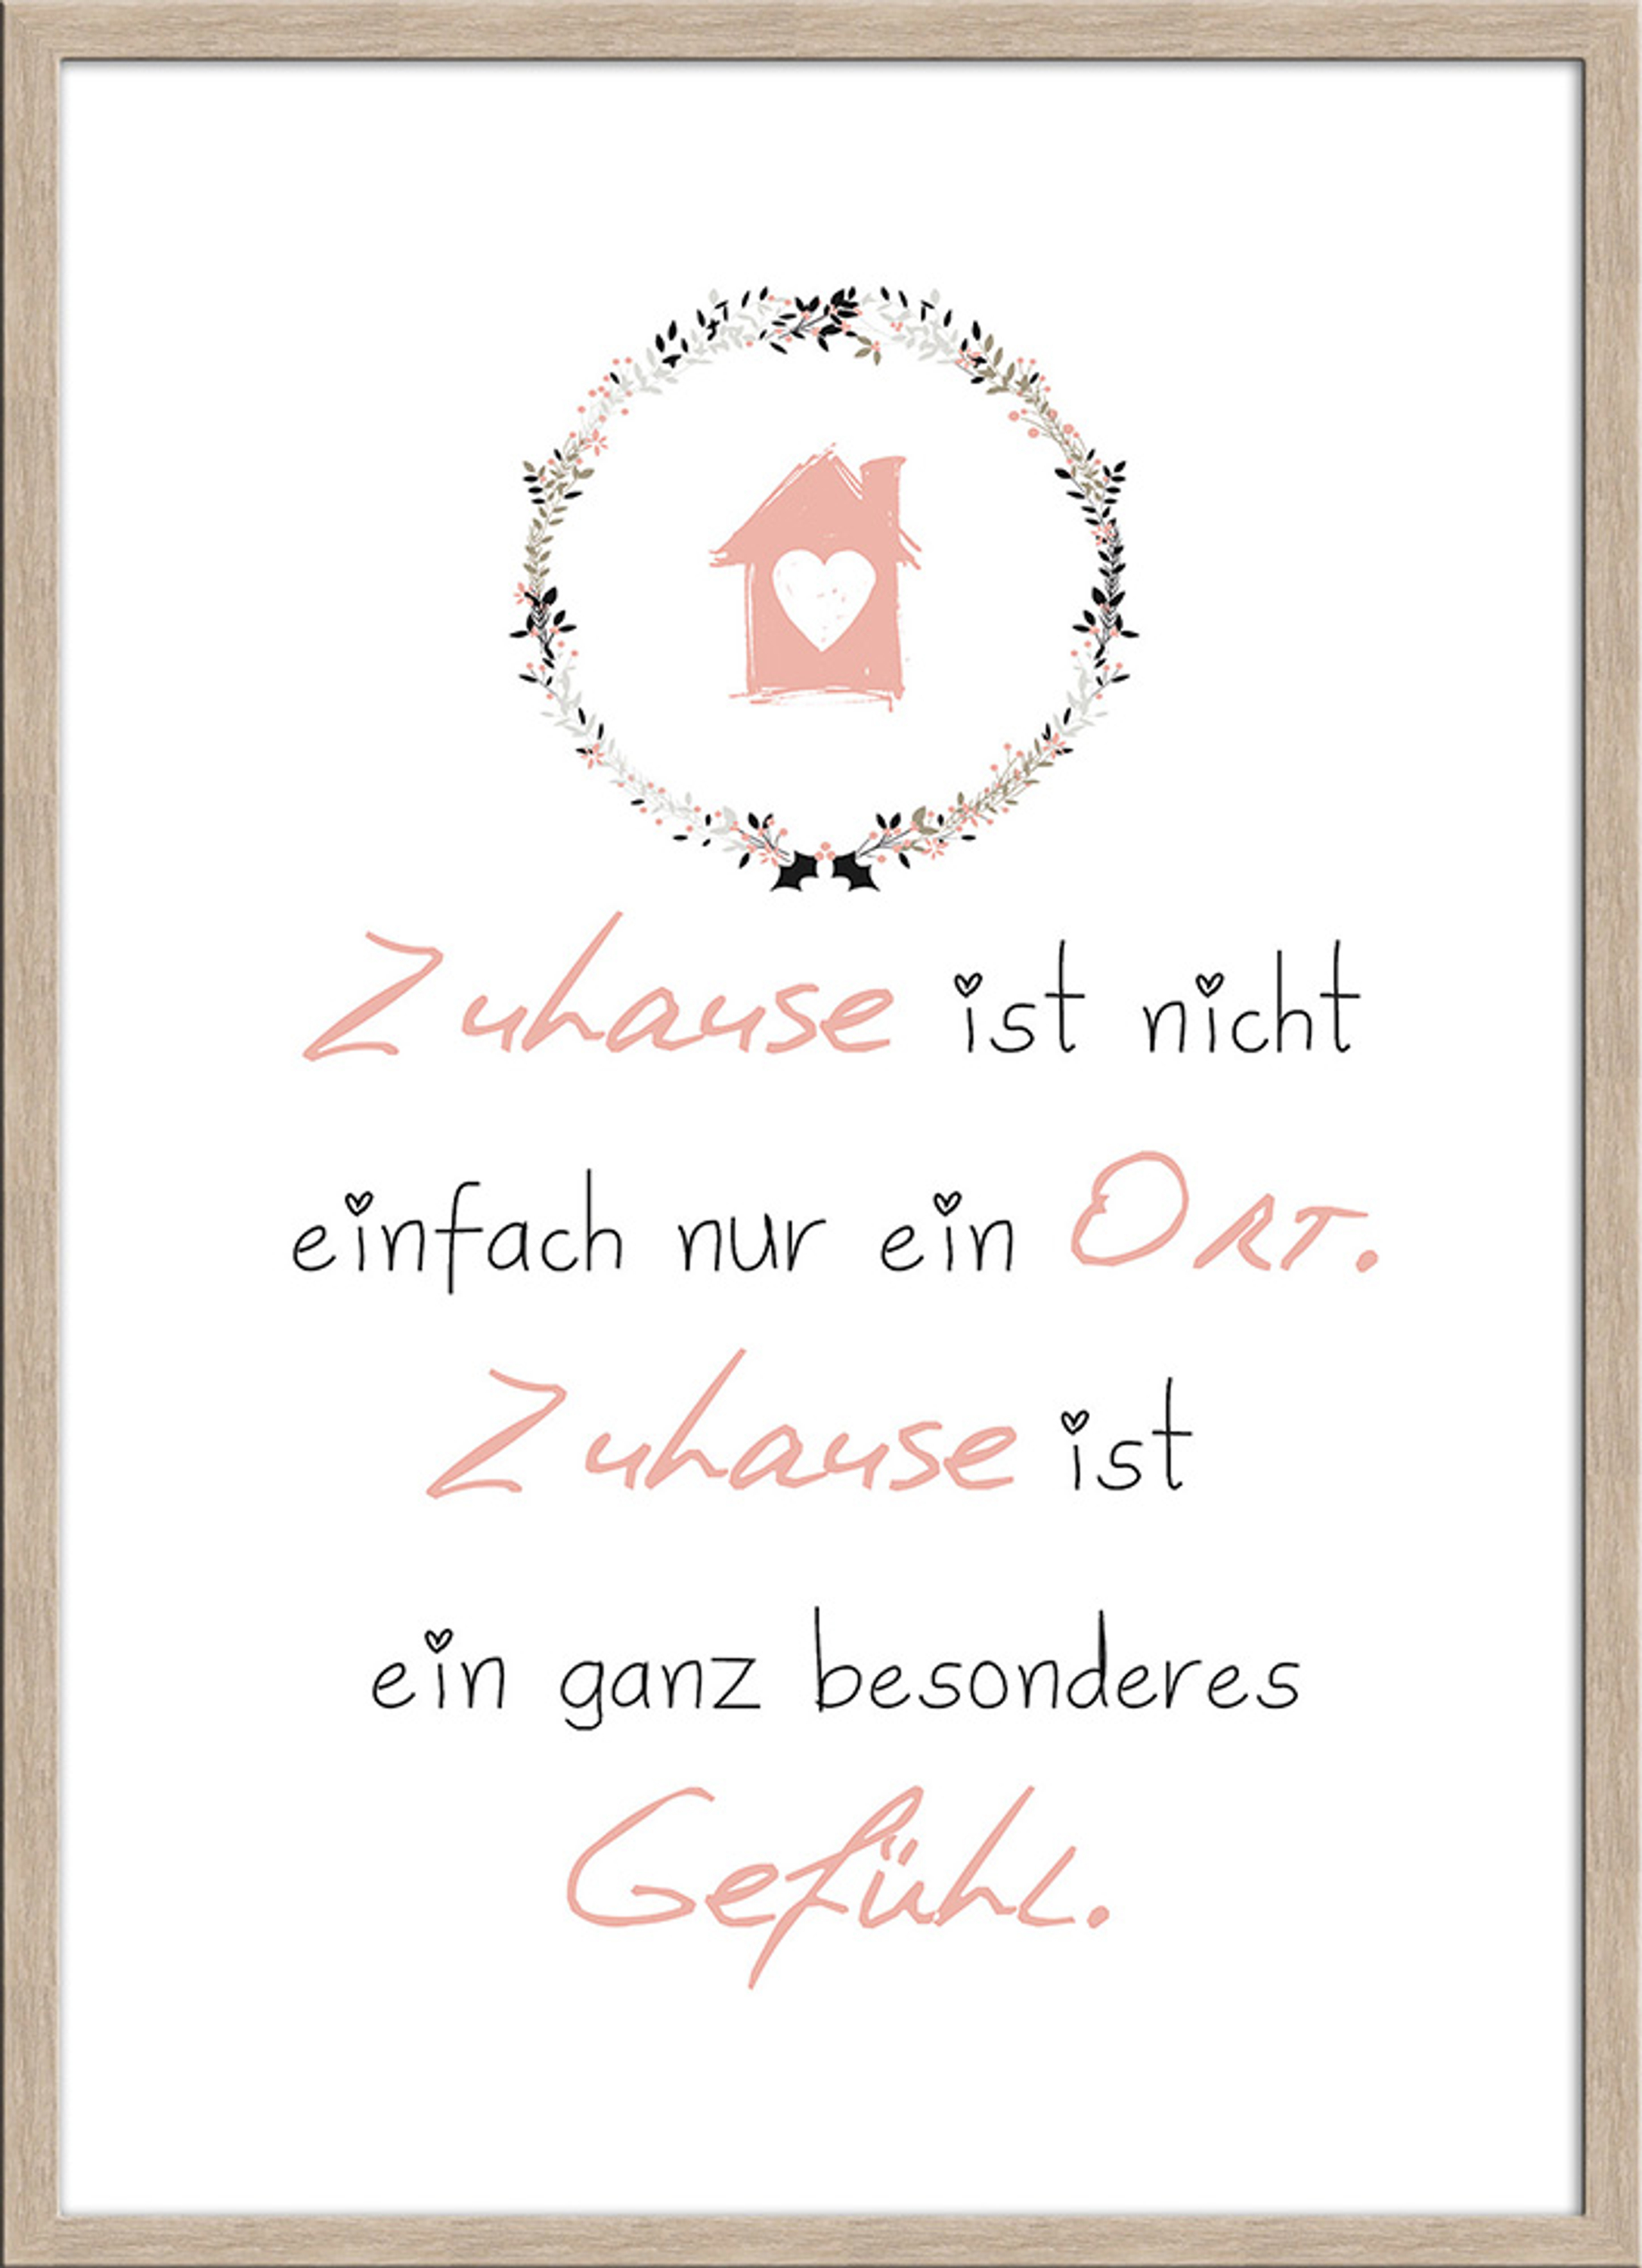 artissimo spruch bild gerahmt 51x71cm poster kunstdruck wandbild bild mit spruch ebay. Black Bedroom Furniture Sets. Home Design Ideas